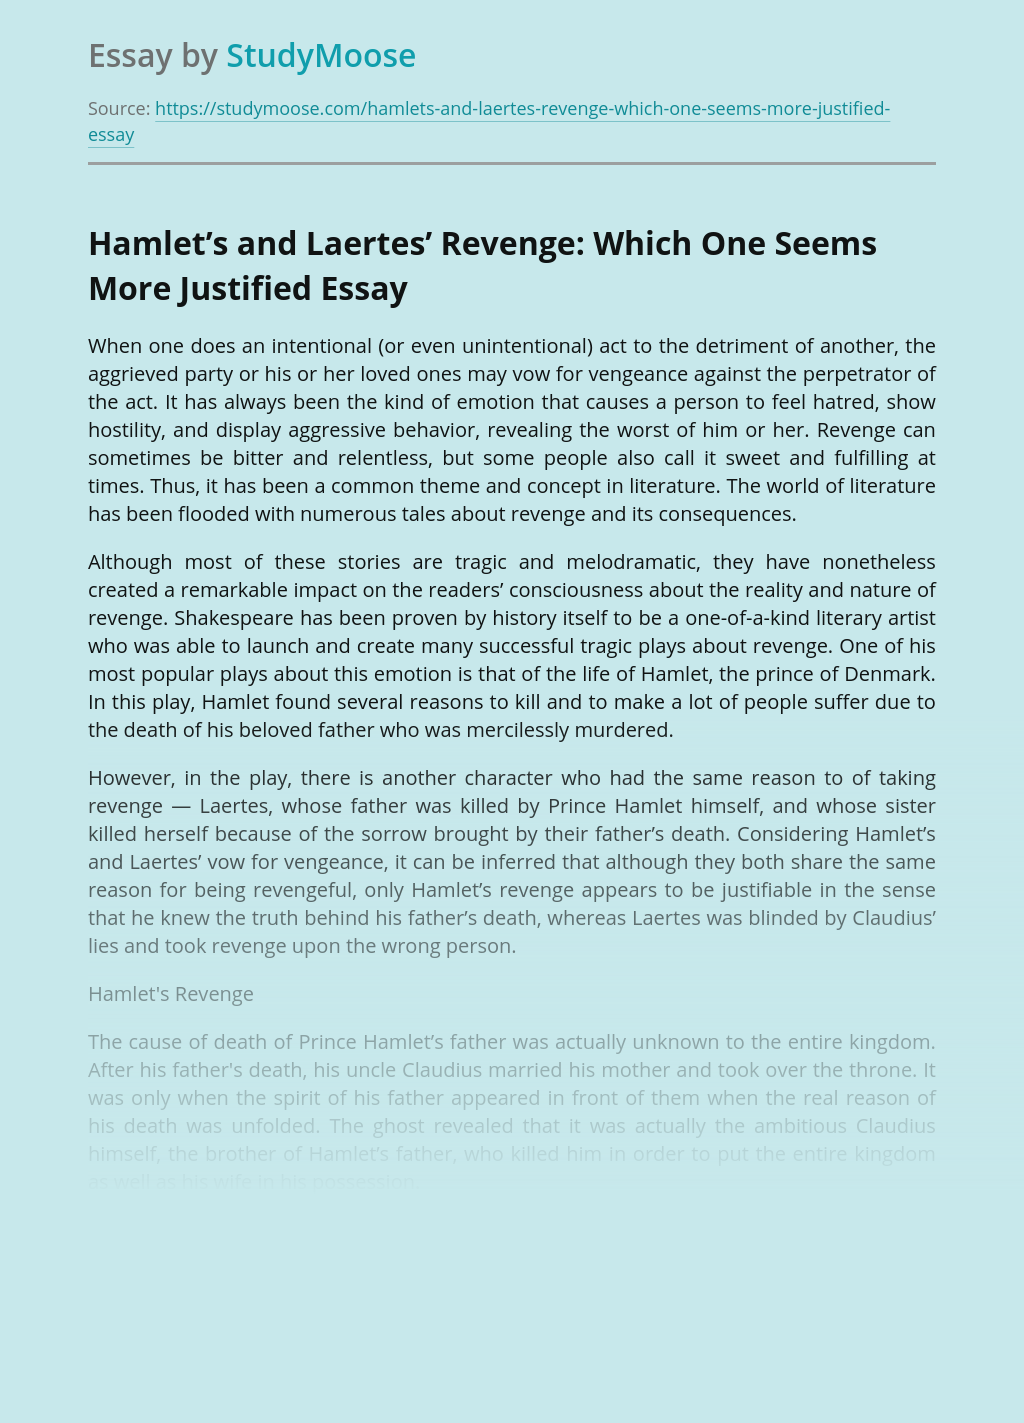 Hamlet's and Laertes' Revenge: Which One Seems More Justified